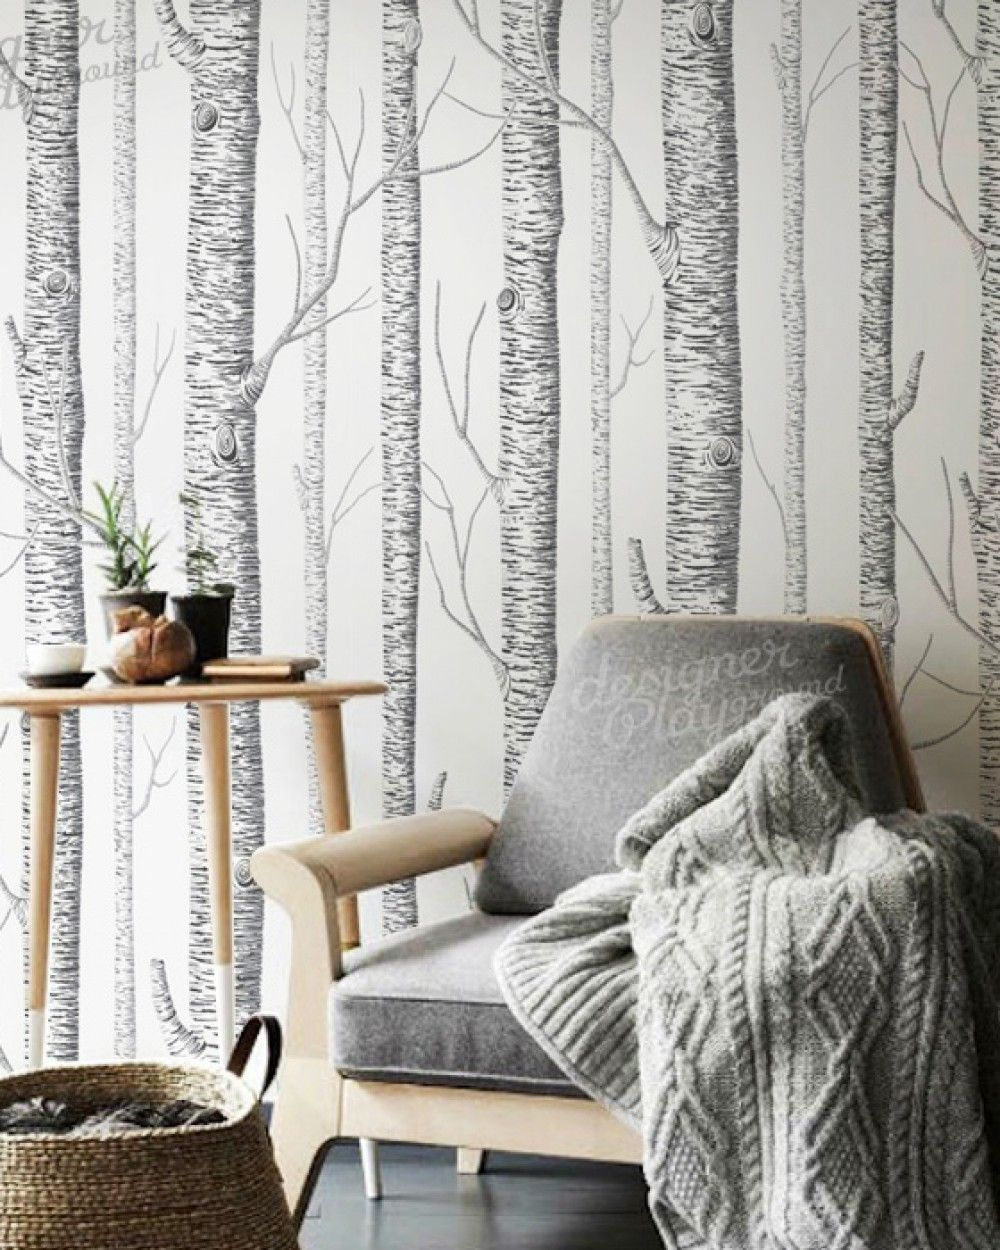 Birch Trees Wallpaper Peel & Stick (With images) Birch